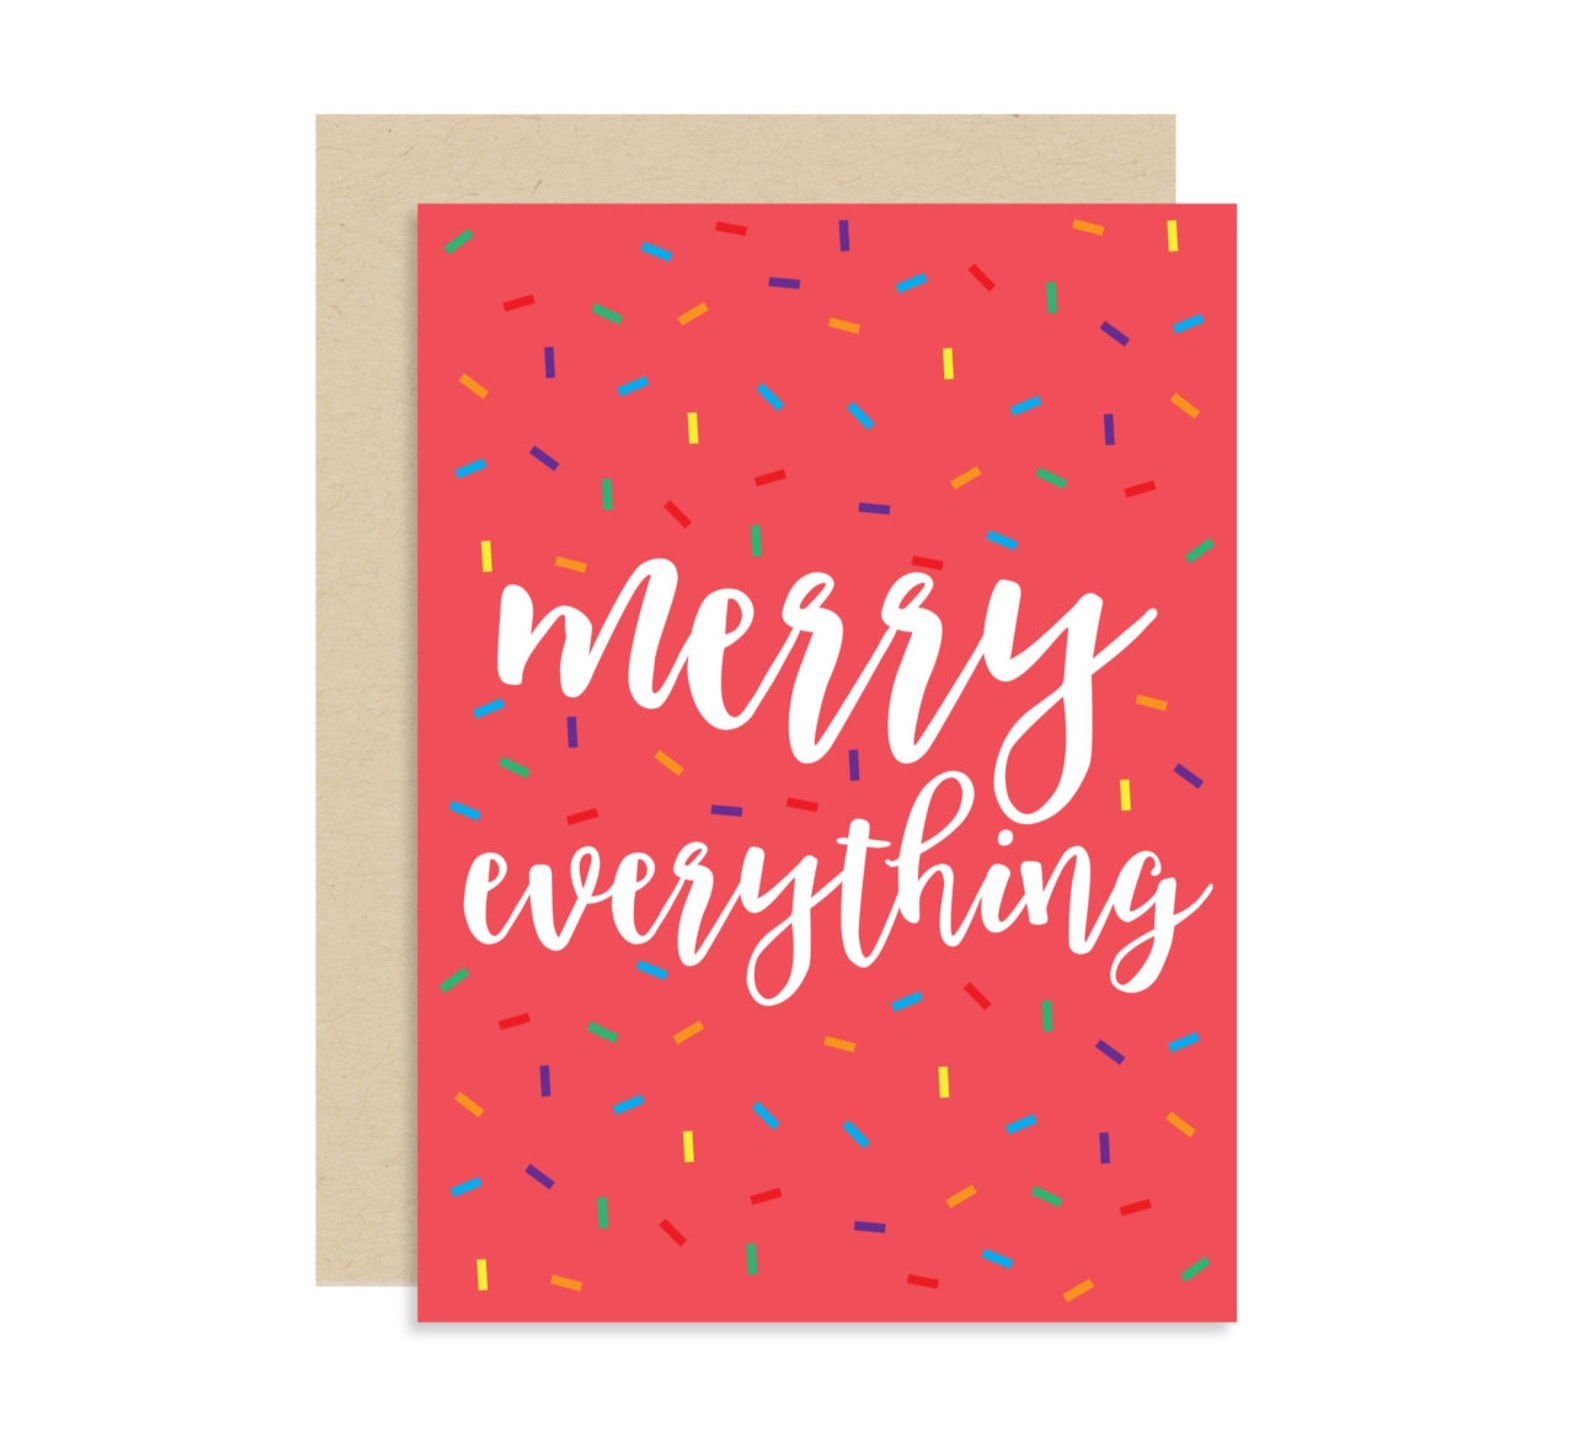 Merry Everything Confetti Sprinkles Christmas Card By Shop Mad Designs